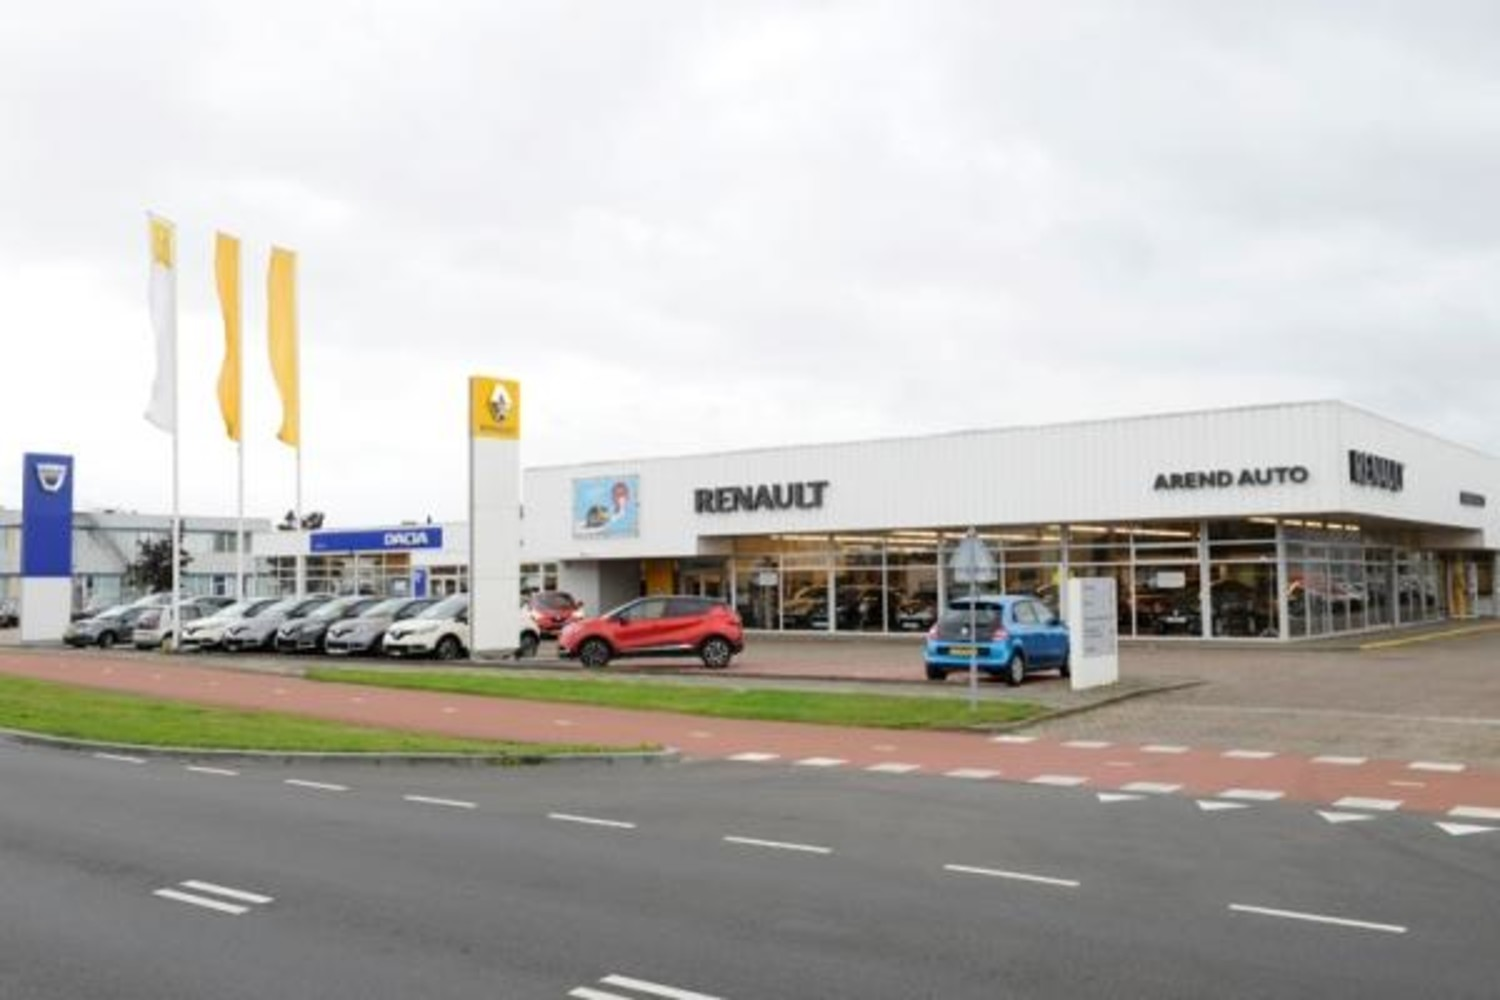 Arend auto Renault - Foto 12